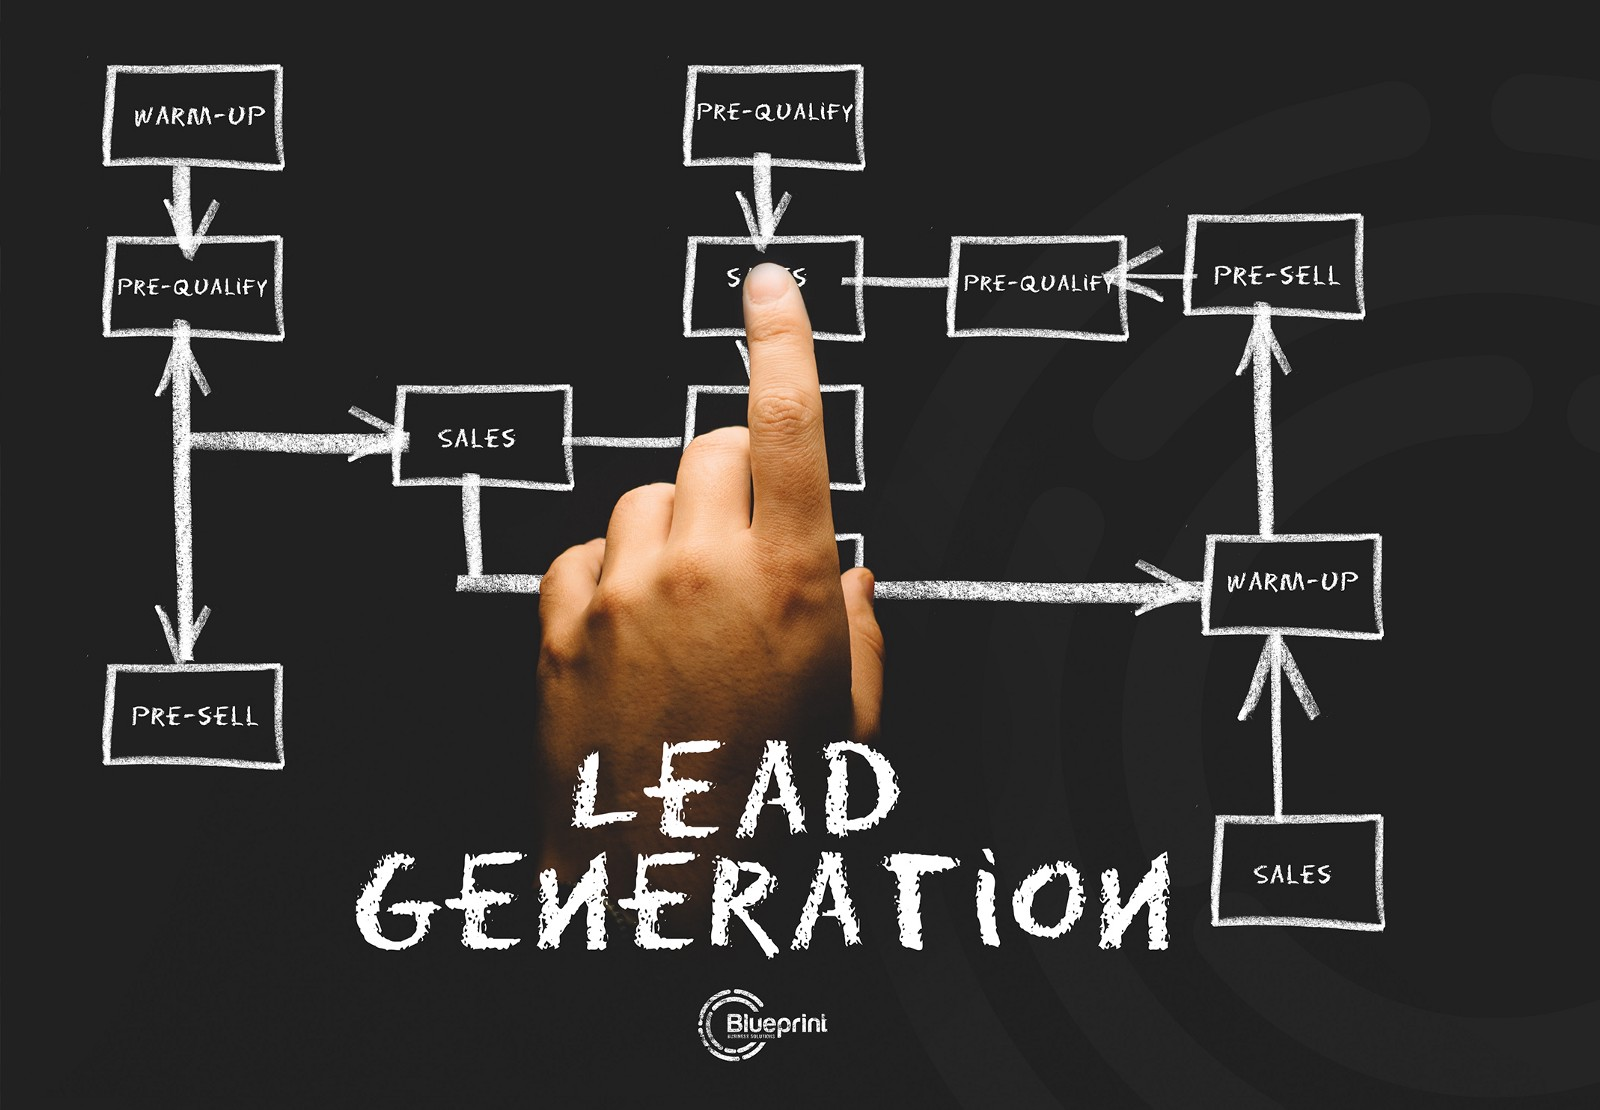 How a lead generation specialist operate blueprint business clients are the lifeblood of the company while employees are the vessels who operates for the mobility of the business establishing a healthy relationship malvernweather Image collections